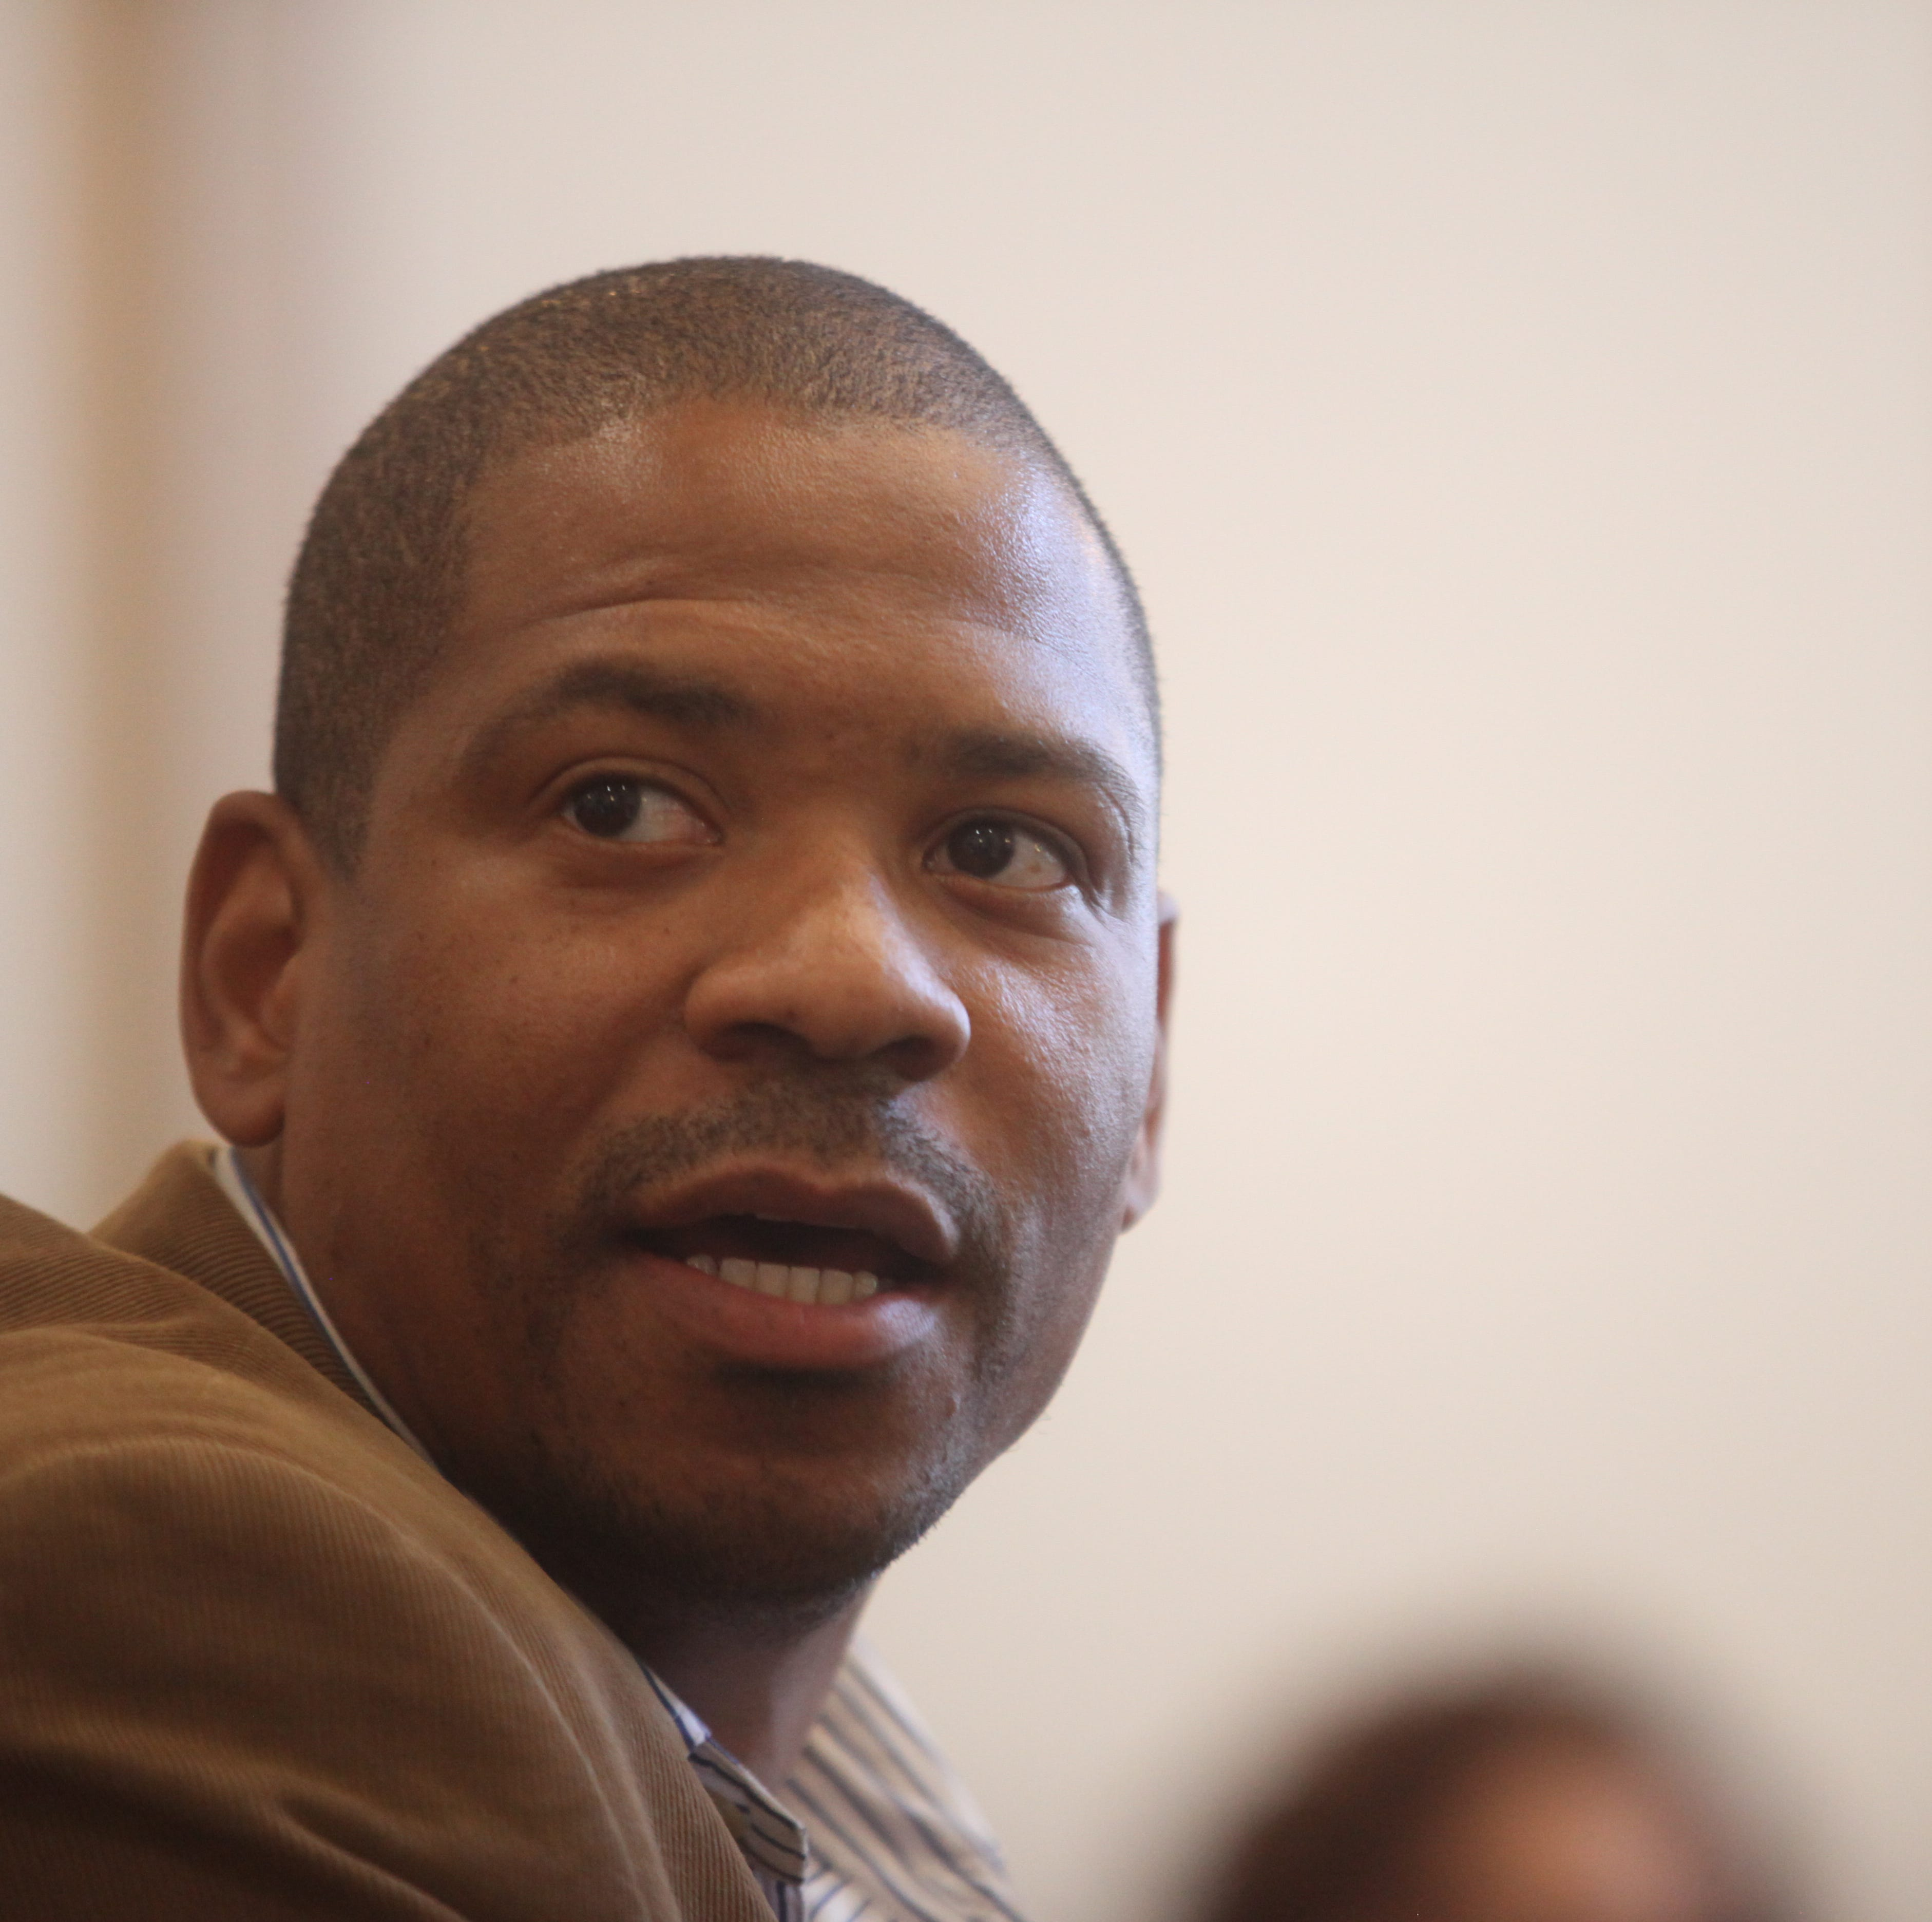 Do felons deserve a chance to clear their record? Delaware Legislature set to debate